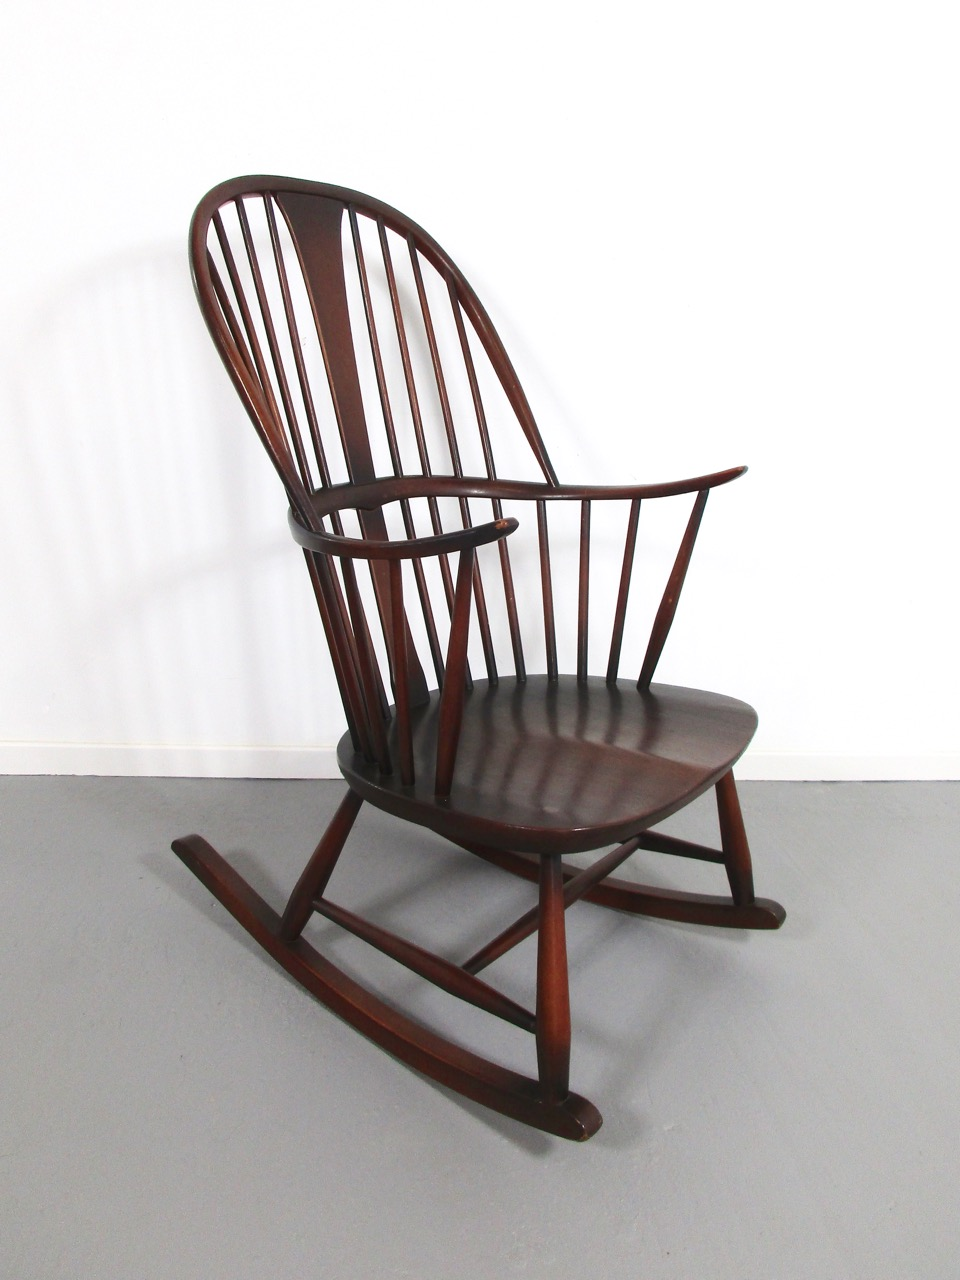 Schaukelstuhl rocking chair ercol england 2 retro salon for Rocking chair schaukelstuhl